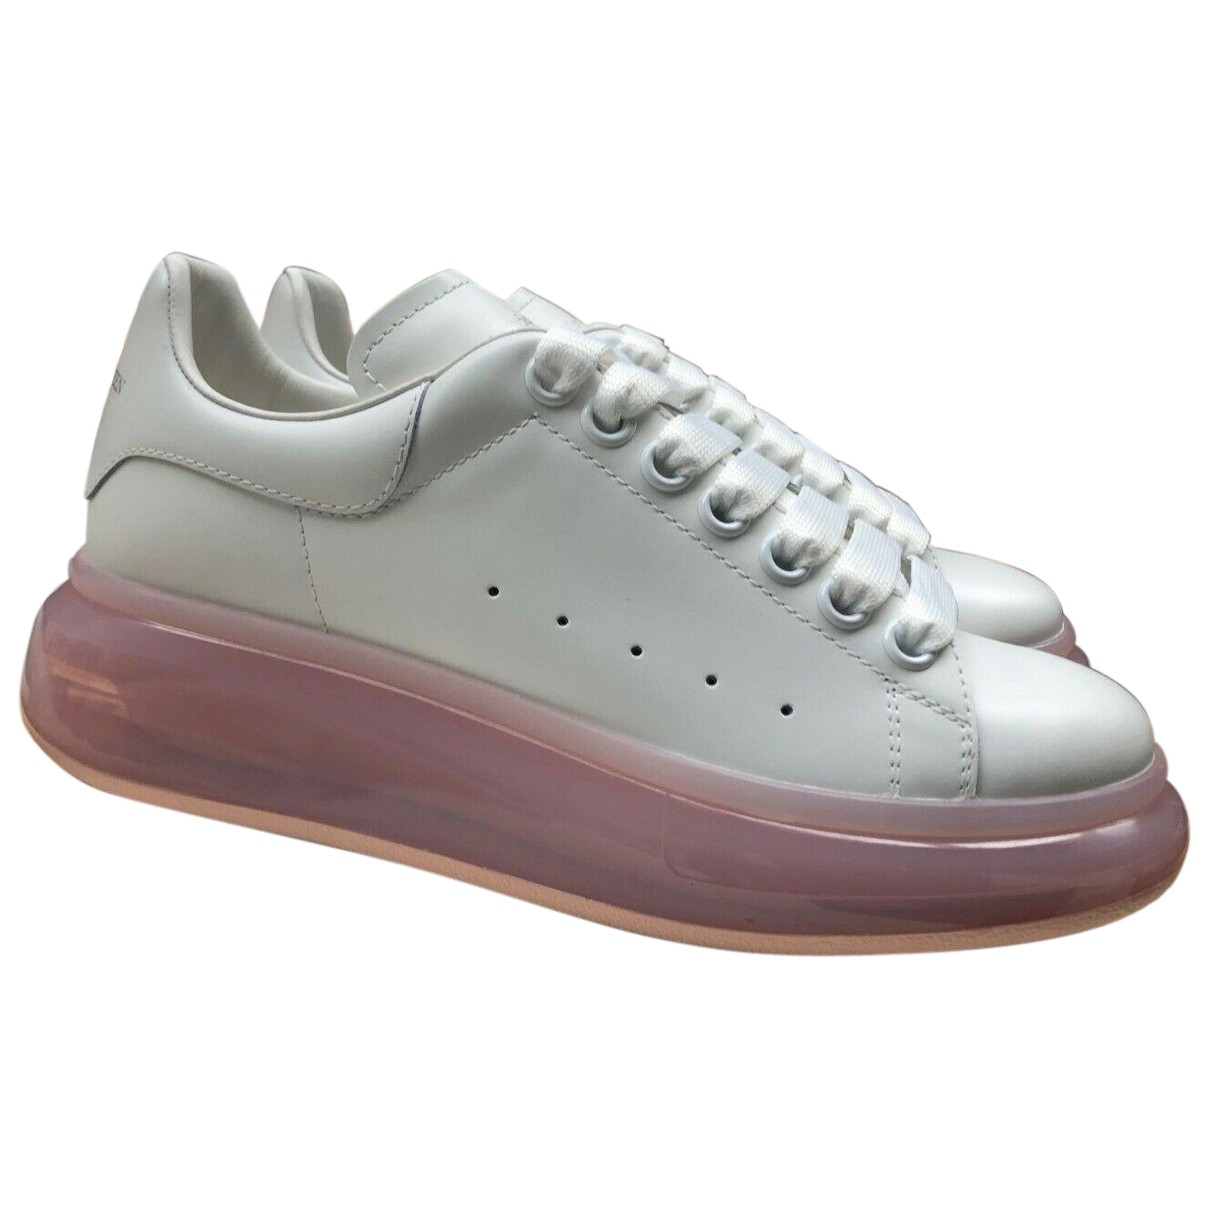 Alexander Mcqueen Oversize White Leather Trainers for Women 38.5 EU